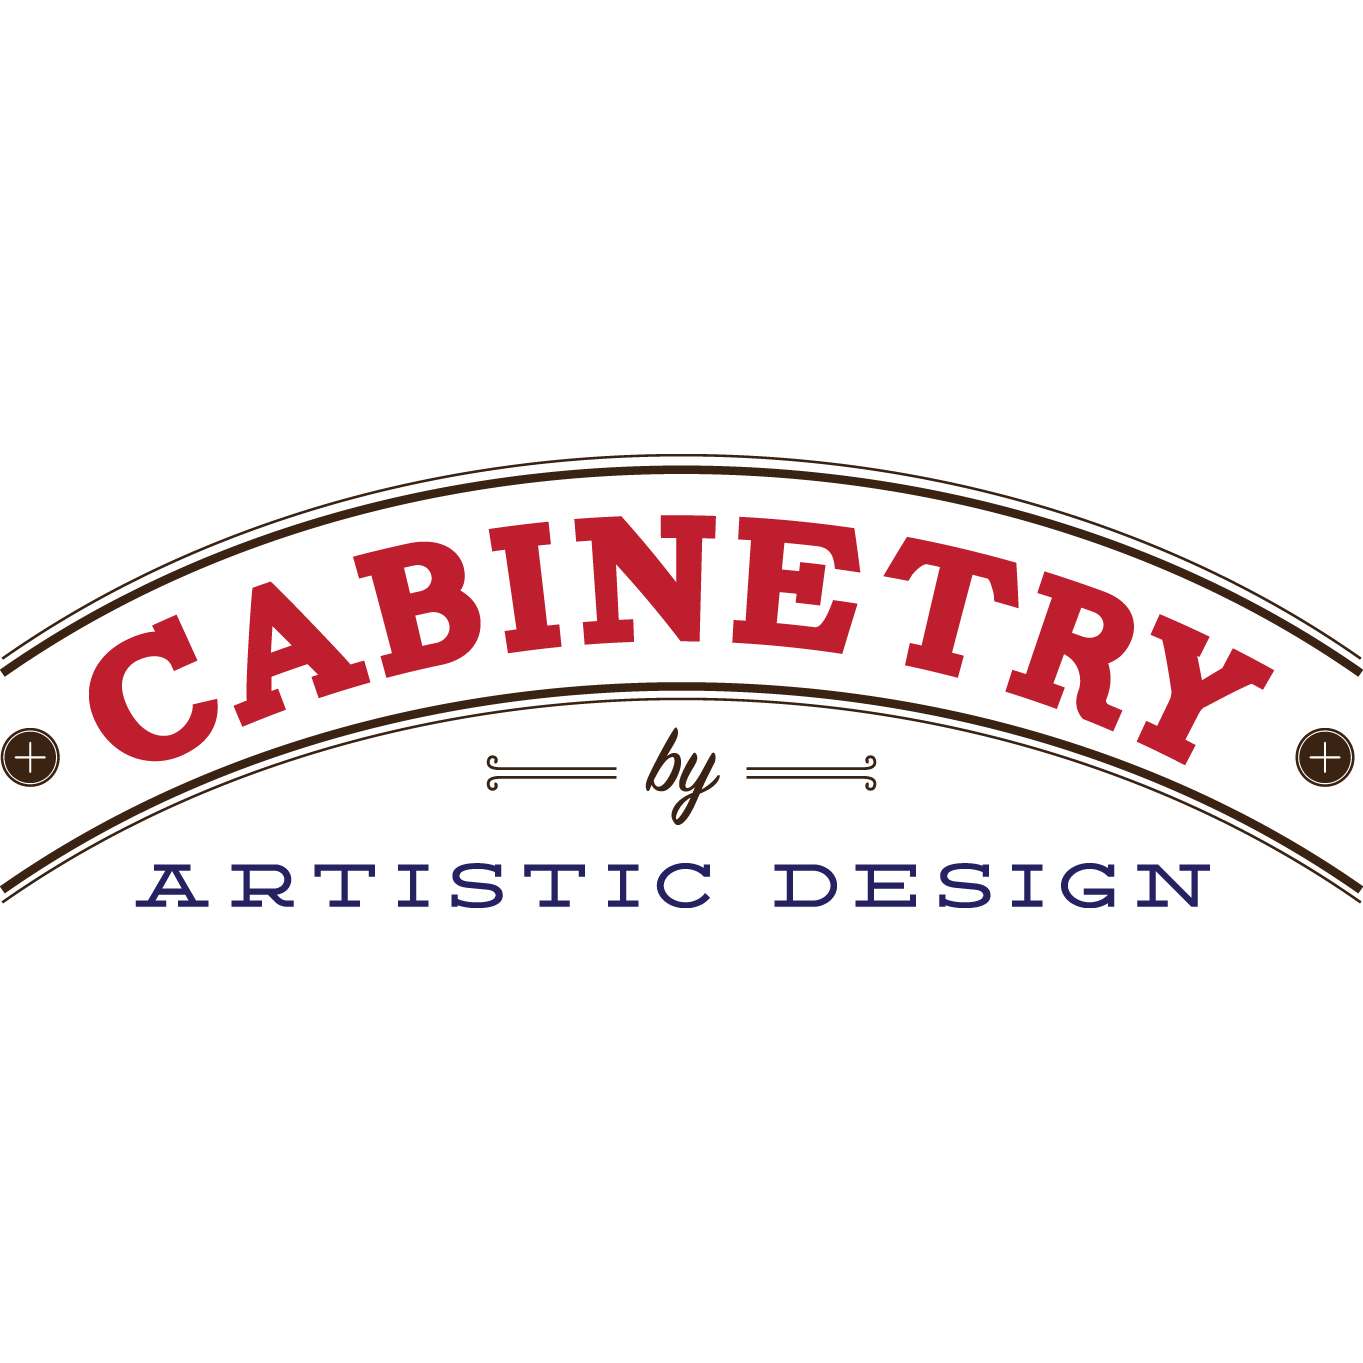 Cabinetry by Artistic Design